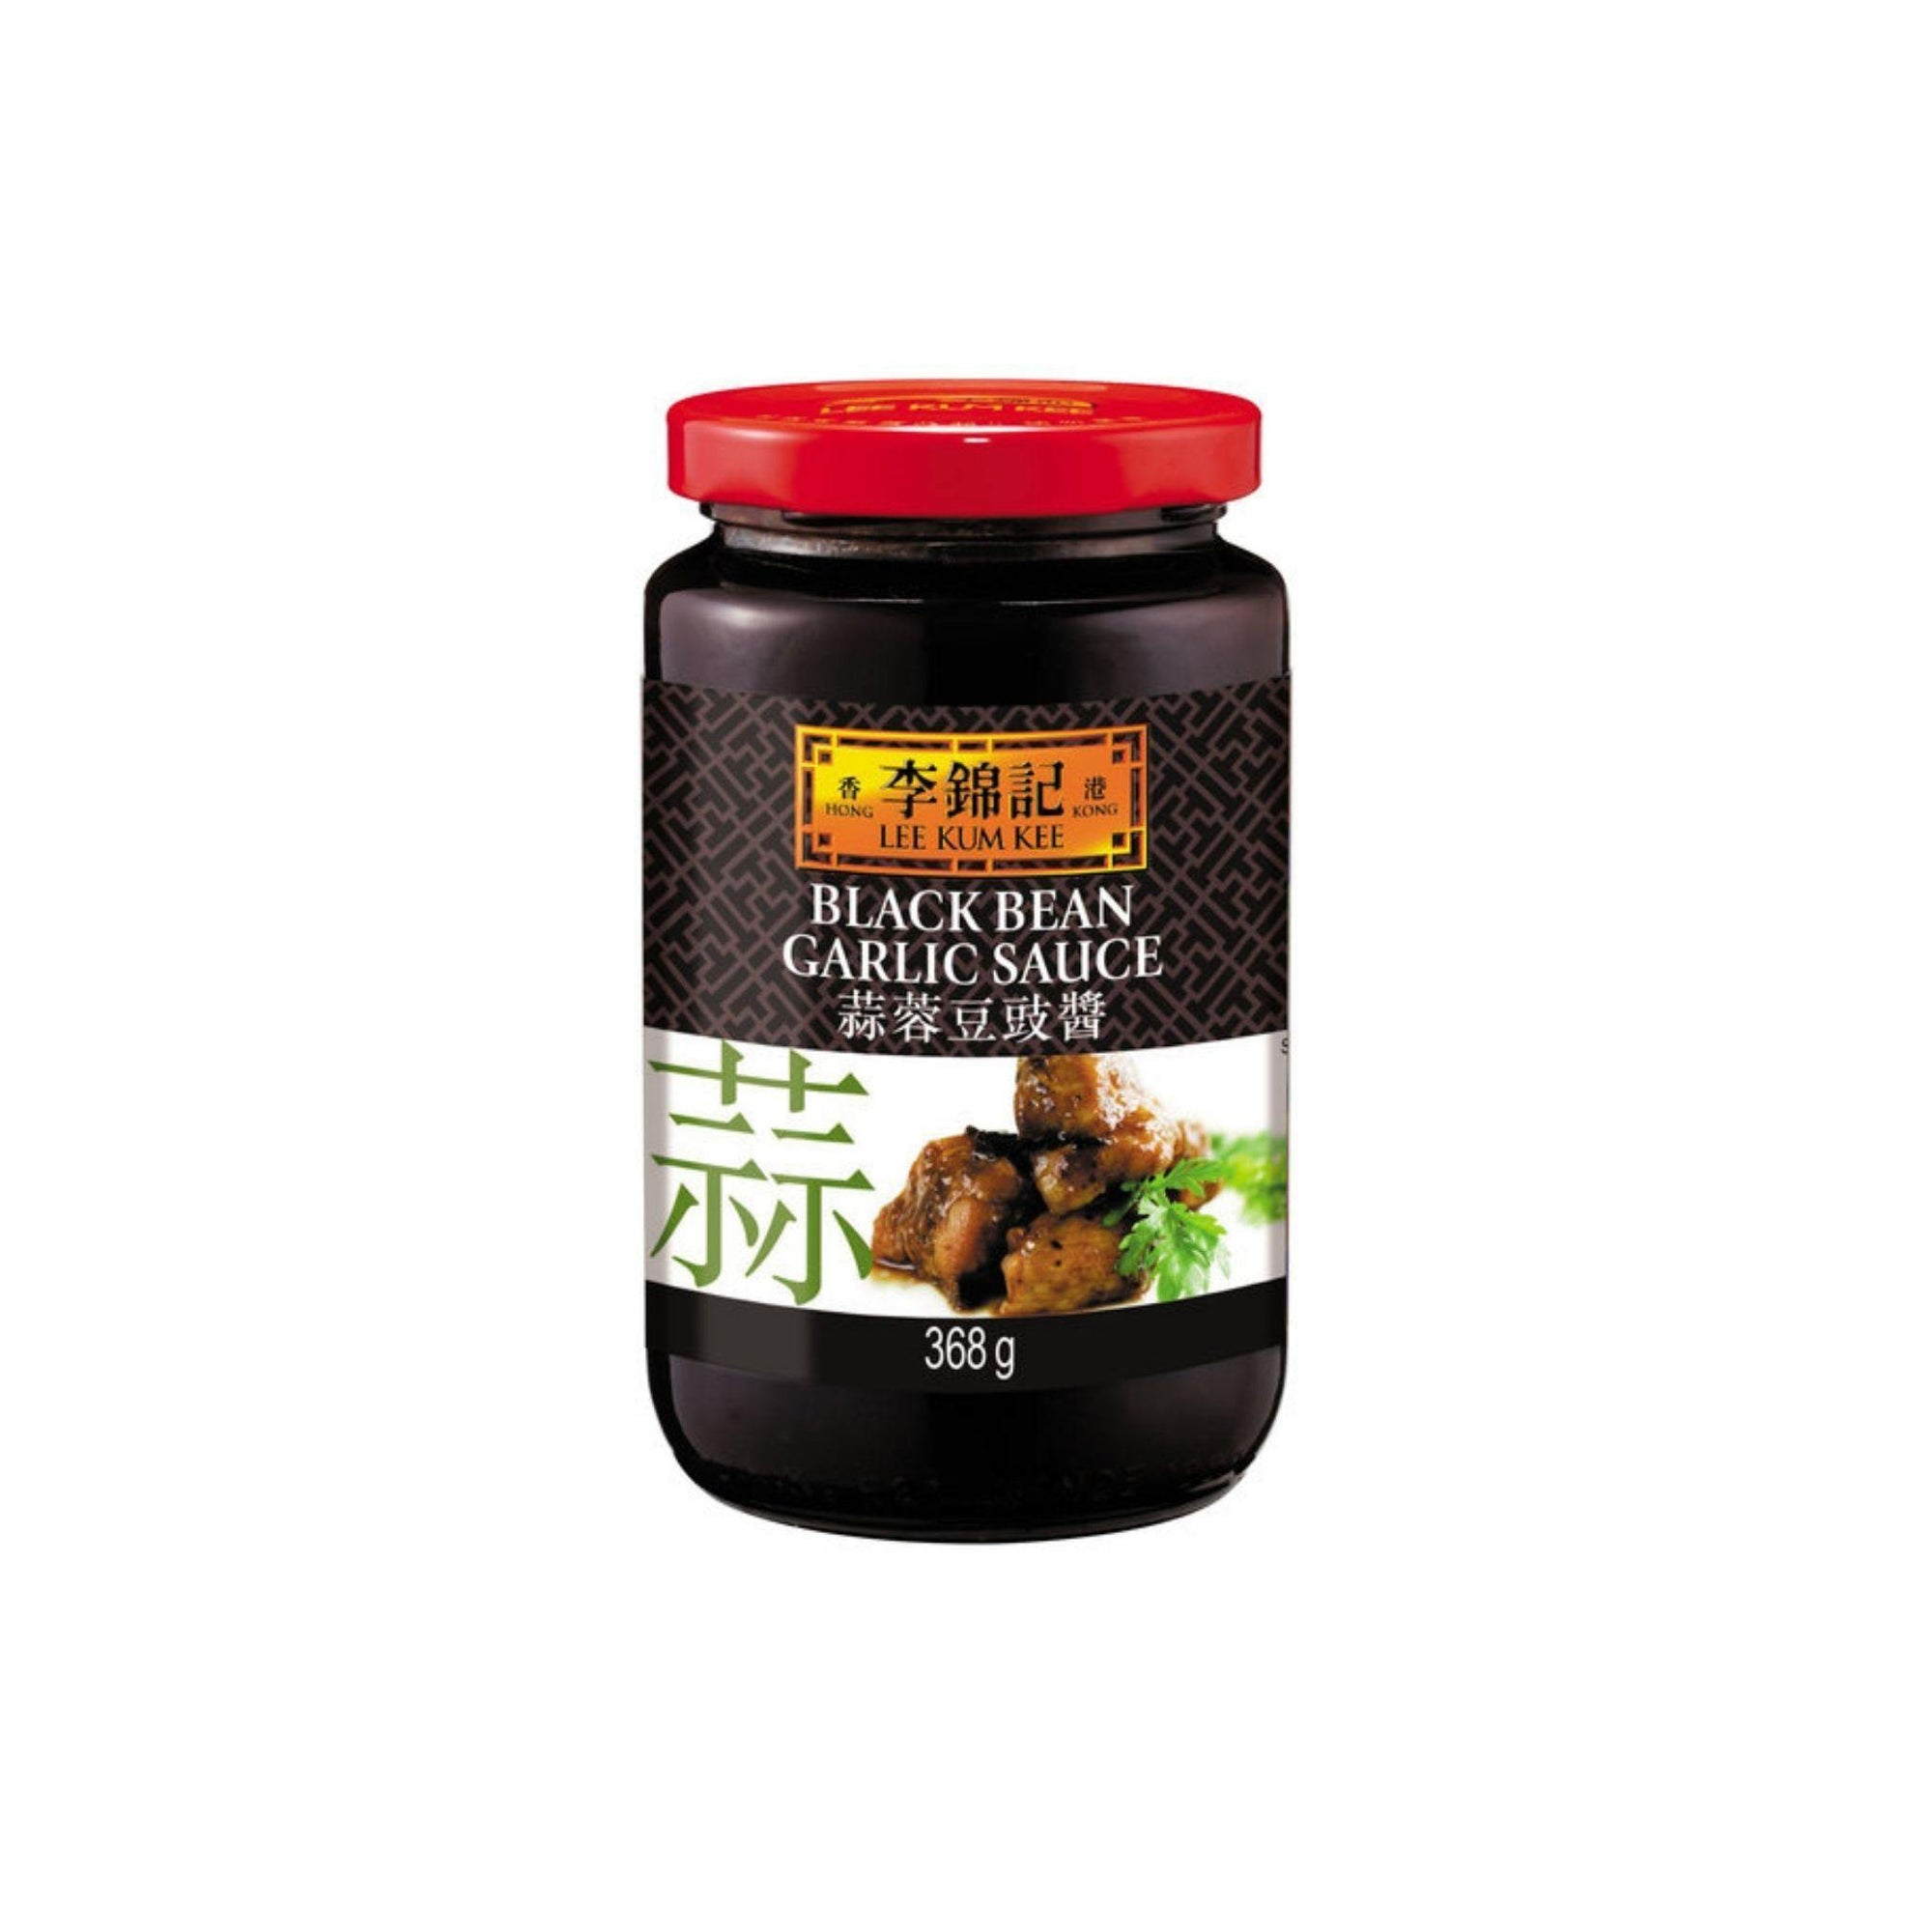 LKK Black Bean And Garlic Sauce 368G - Asian Harvest